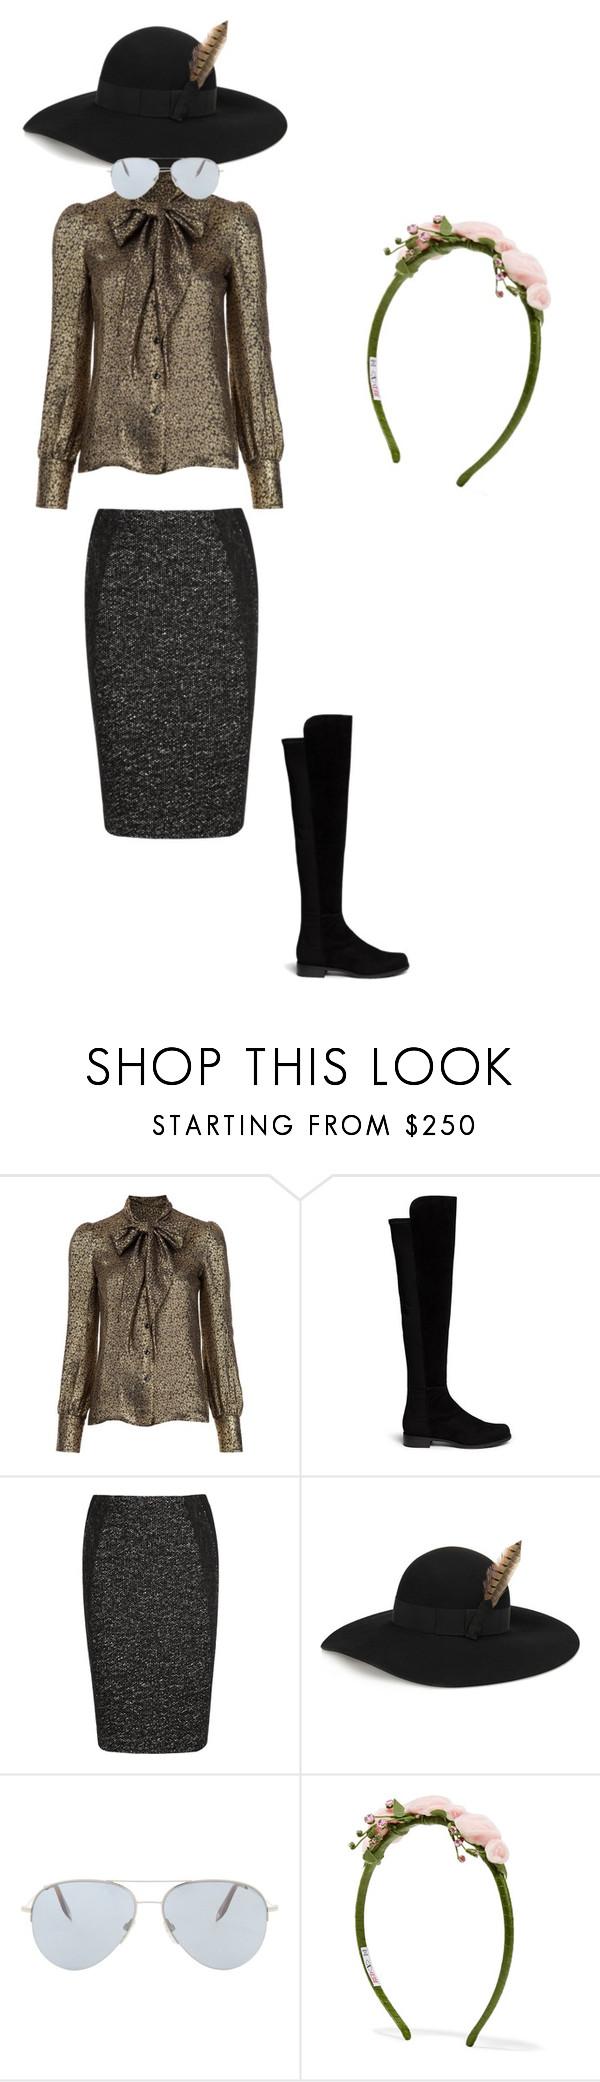 """""""Lets rock The party"""" by ramakumari ❤ liked on Polyvore featuring Yves Saint Laurent, Stuart Weitzman, Donna Karan, Victoria Beckham and RED Valentino"""